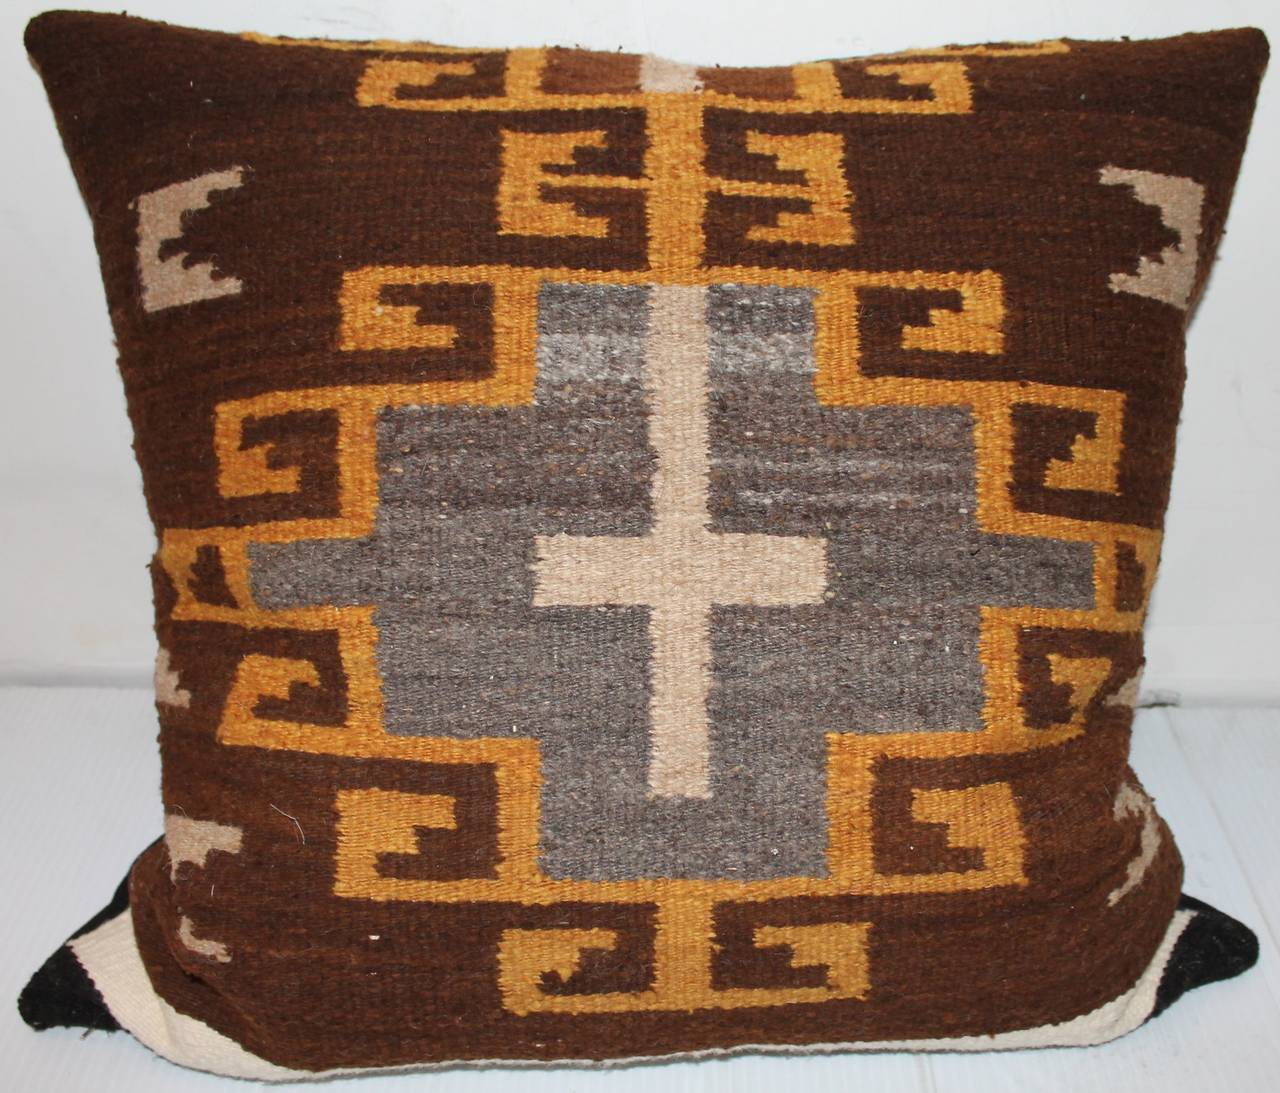 1885 Antique Navajo Rug Transitional Period Late Classic